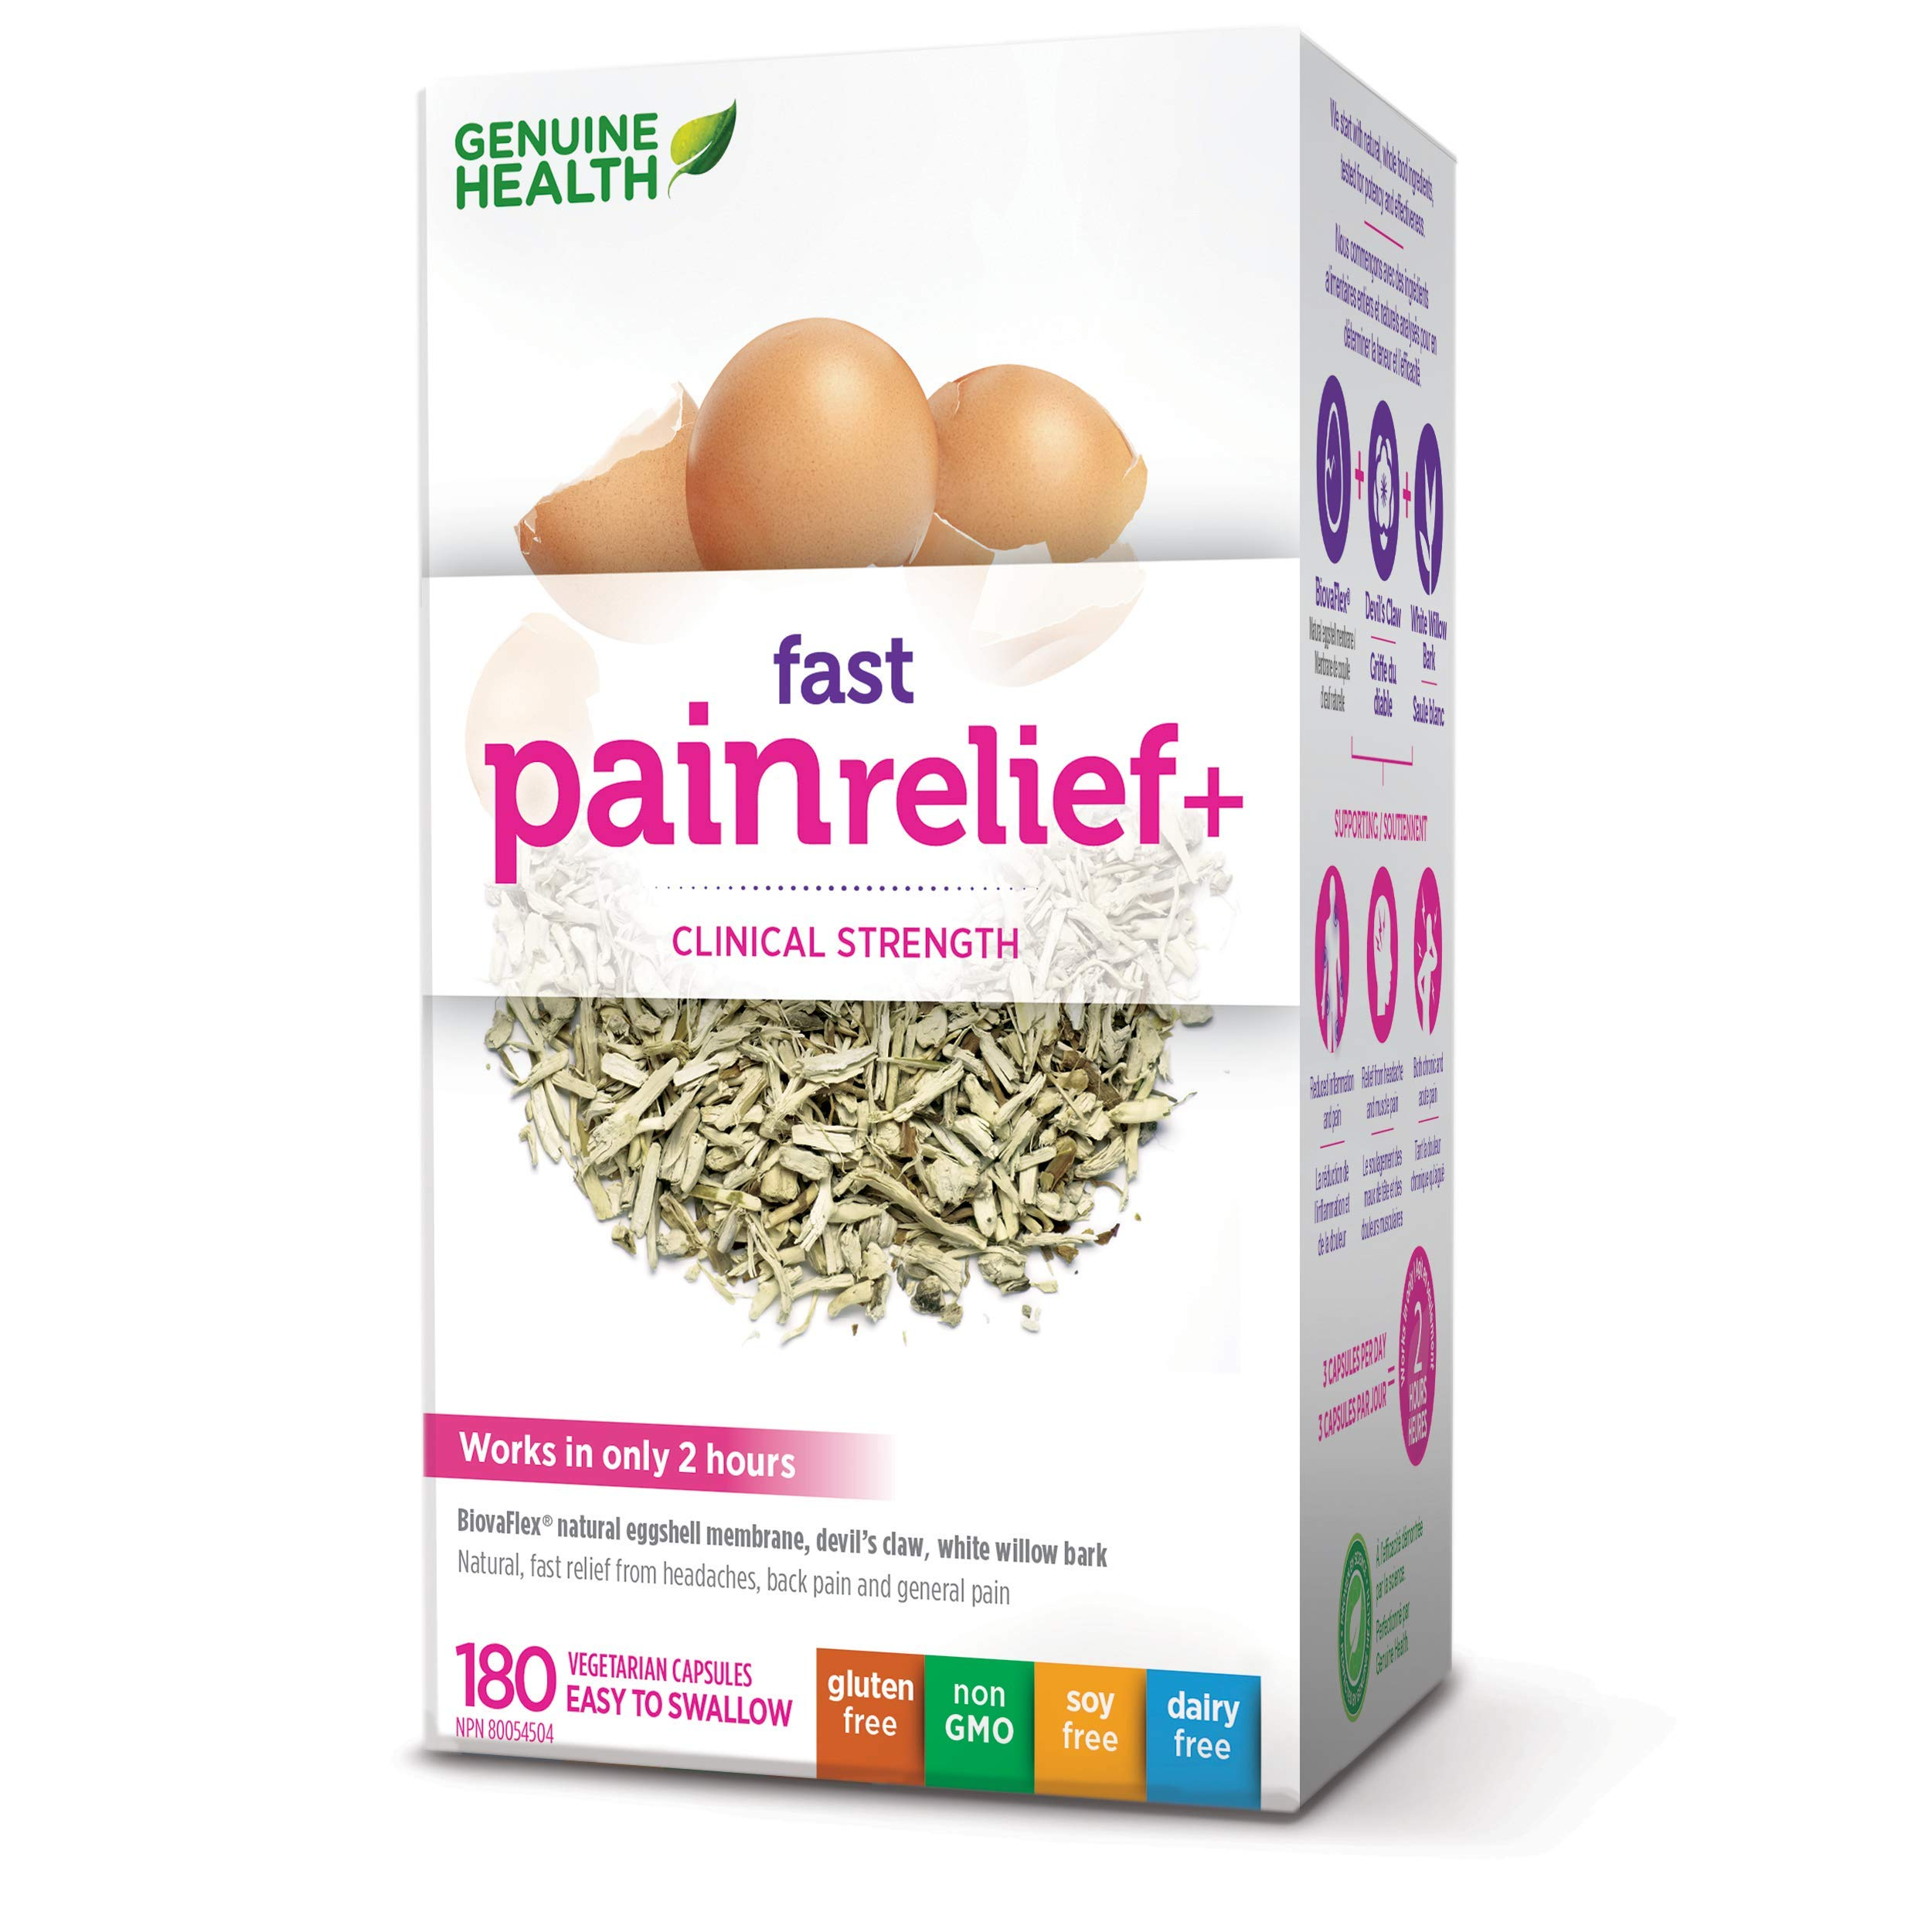 fast pain relief (formerly fast back care+) With NEM Natural Eggshell Membrane (180 Capsules) Brand: Genuine Health by Genuine Health